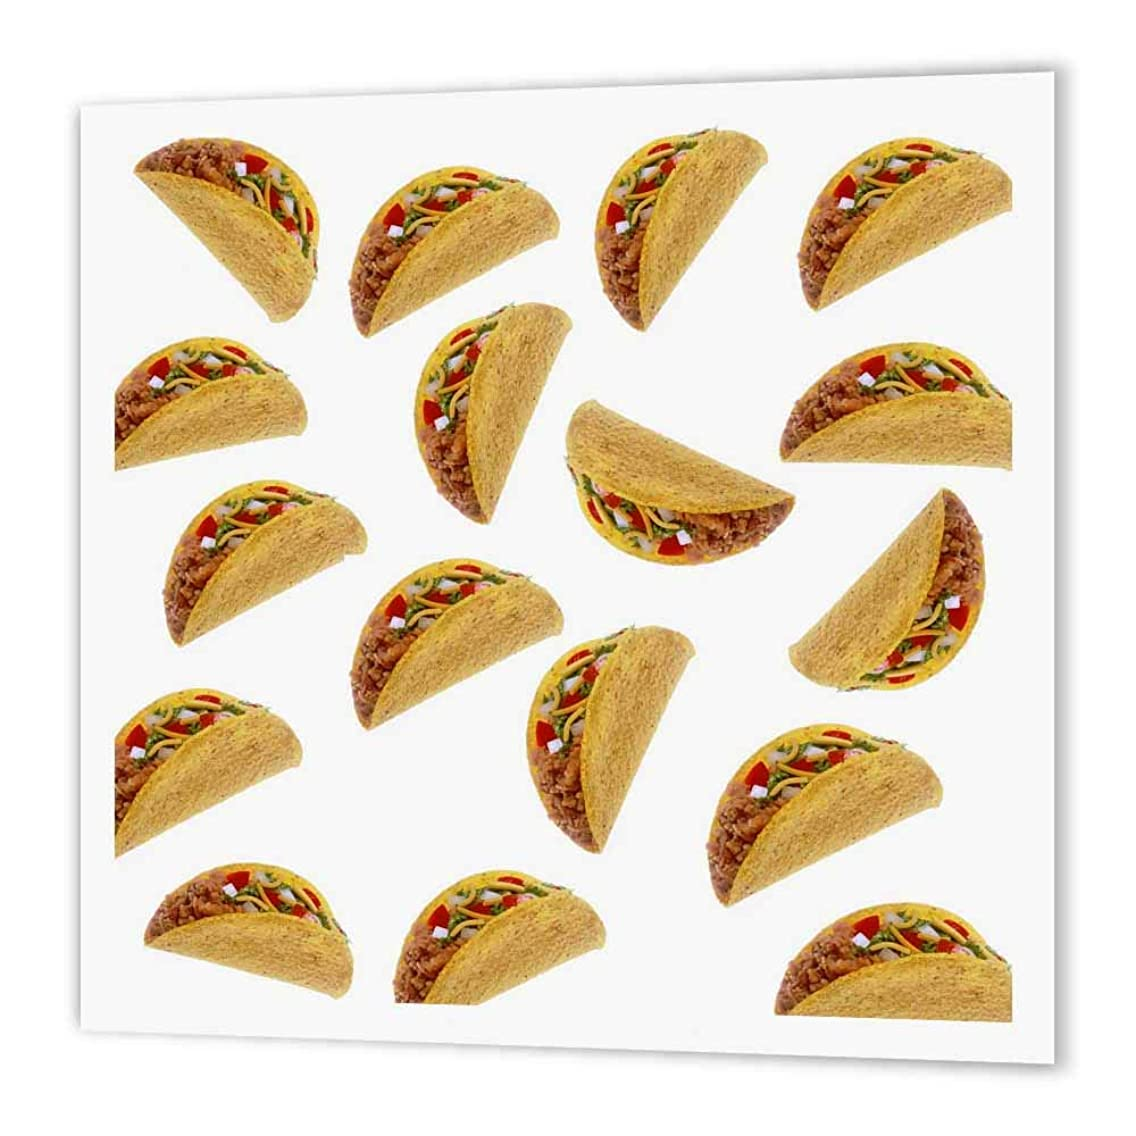 3dRose Print of Tacos Toss Repeat Pattern - Iron on Heat Transfer, 8 by 8-Inch, for White Material (ht_221648_1)